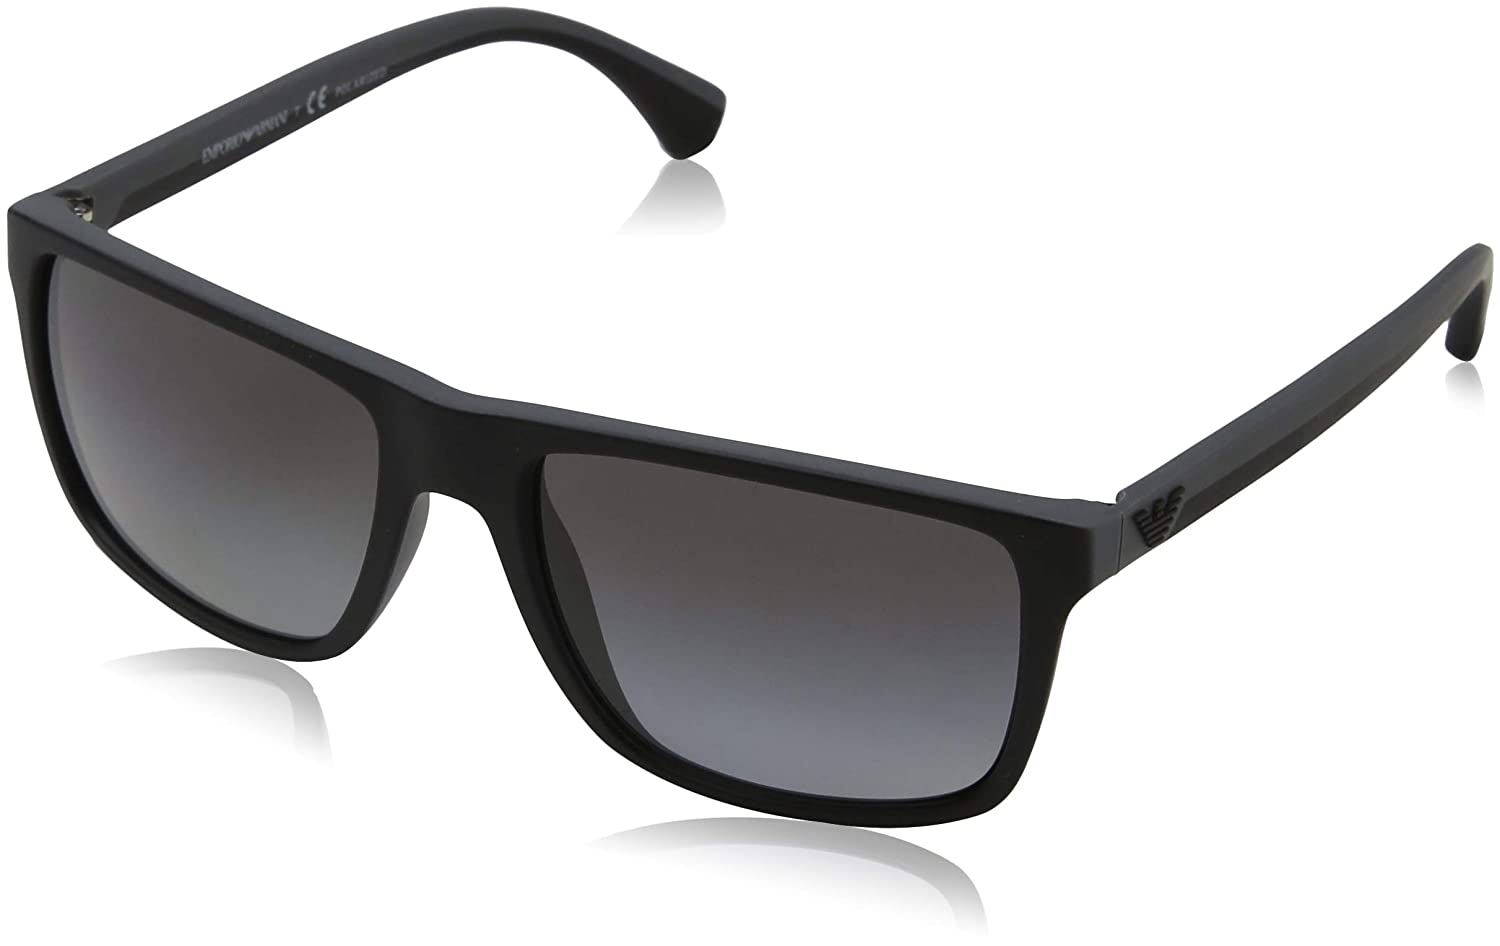 ce438762332 Emporio Armani EA 4033 Men s Sunglasses at Amazon Women s Clothing store